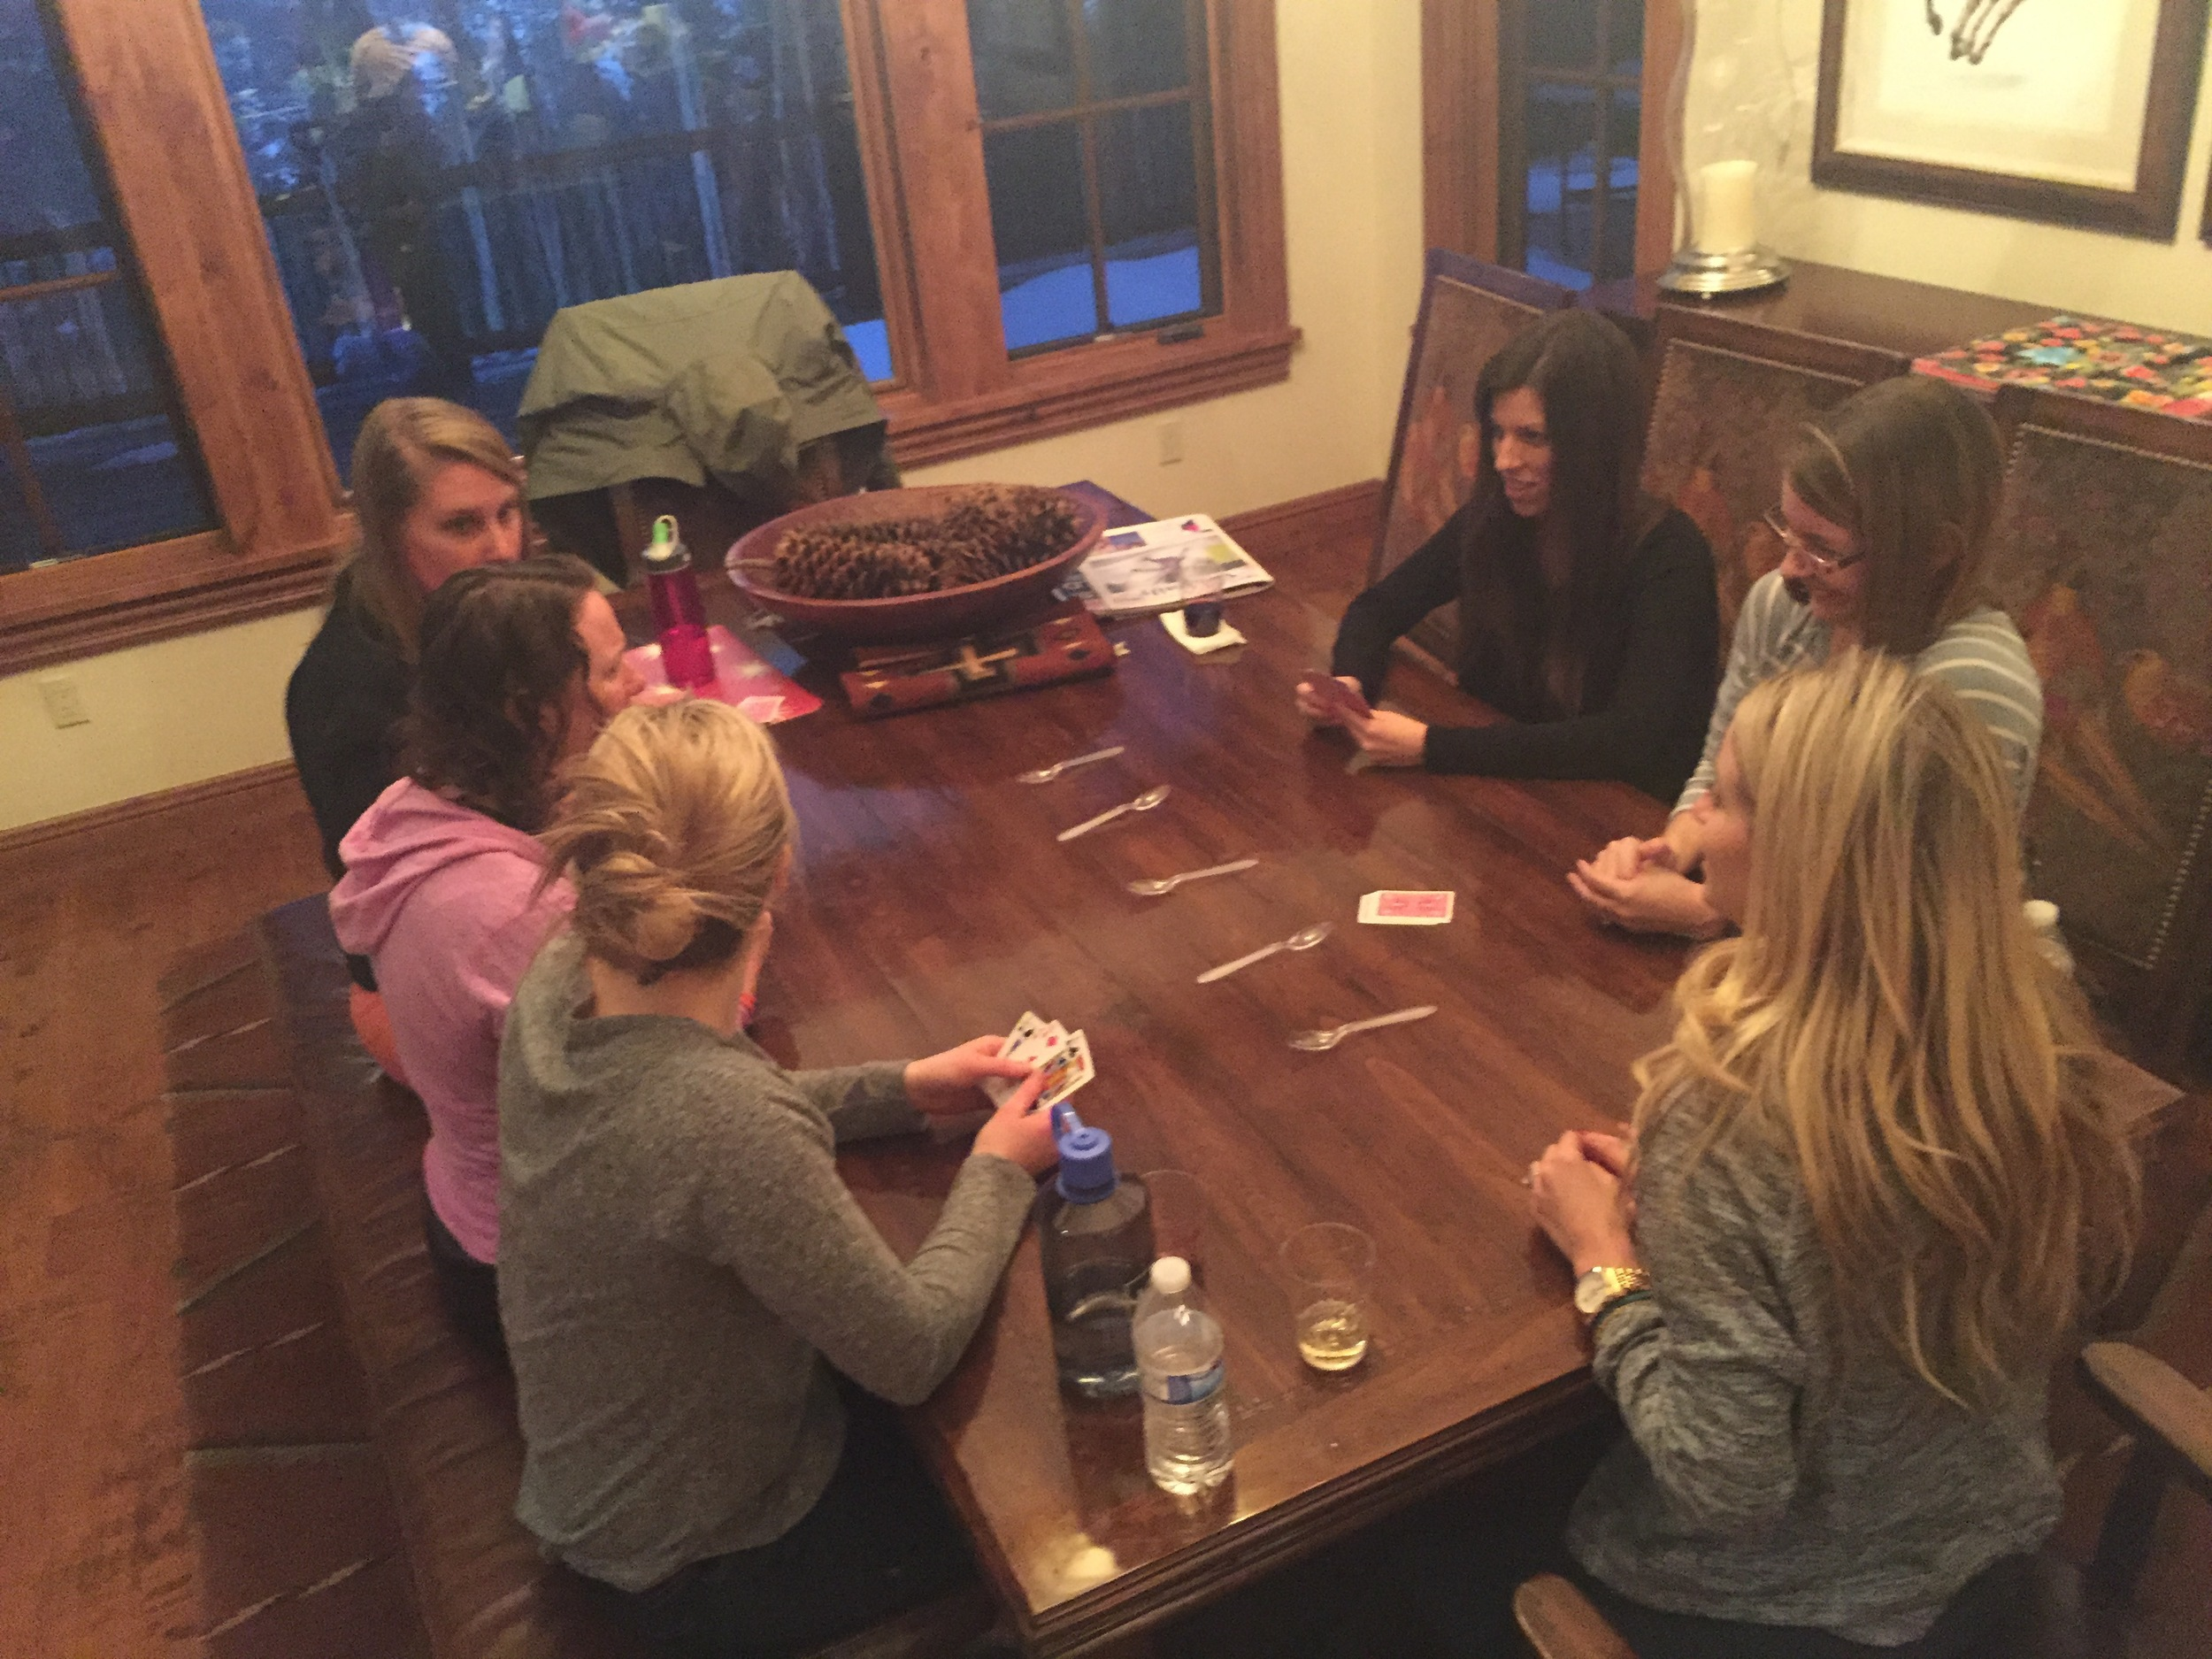 Playing Spoons